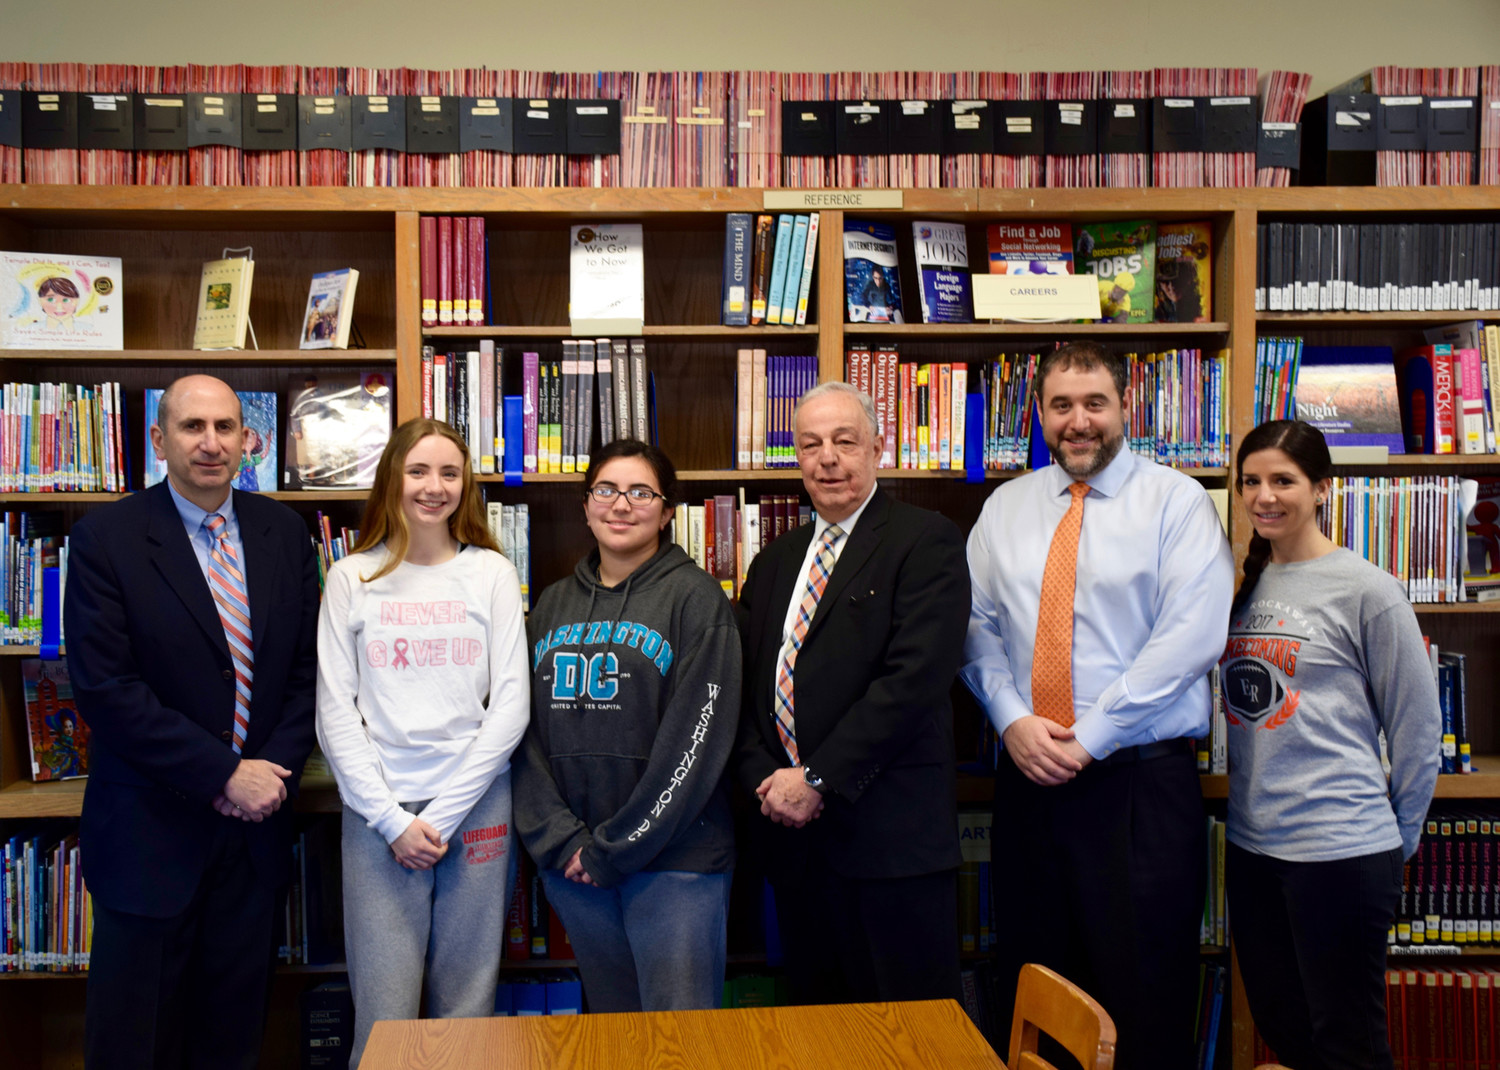 Marissela Gomez, third from left, will represent East Rockaway Junior-Senior High School's class of 2018 as valedictorian, and Gabby Walsh, second from left, will be salutatorian. Above, the students with Assistant Principal James DeTommaso, left, Interim Principal Neil Lederer, Director of Guidance Andrew Rosenberg and guidance counselor Jennifer Melecio.